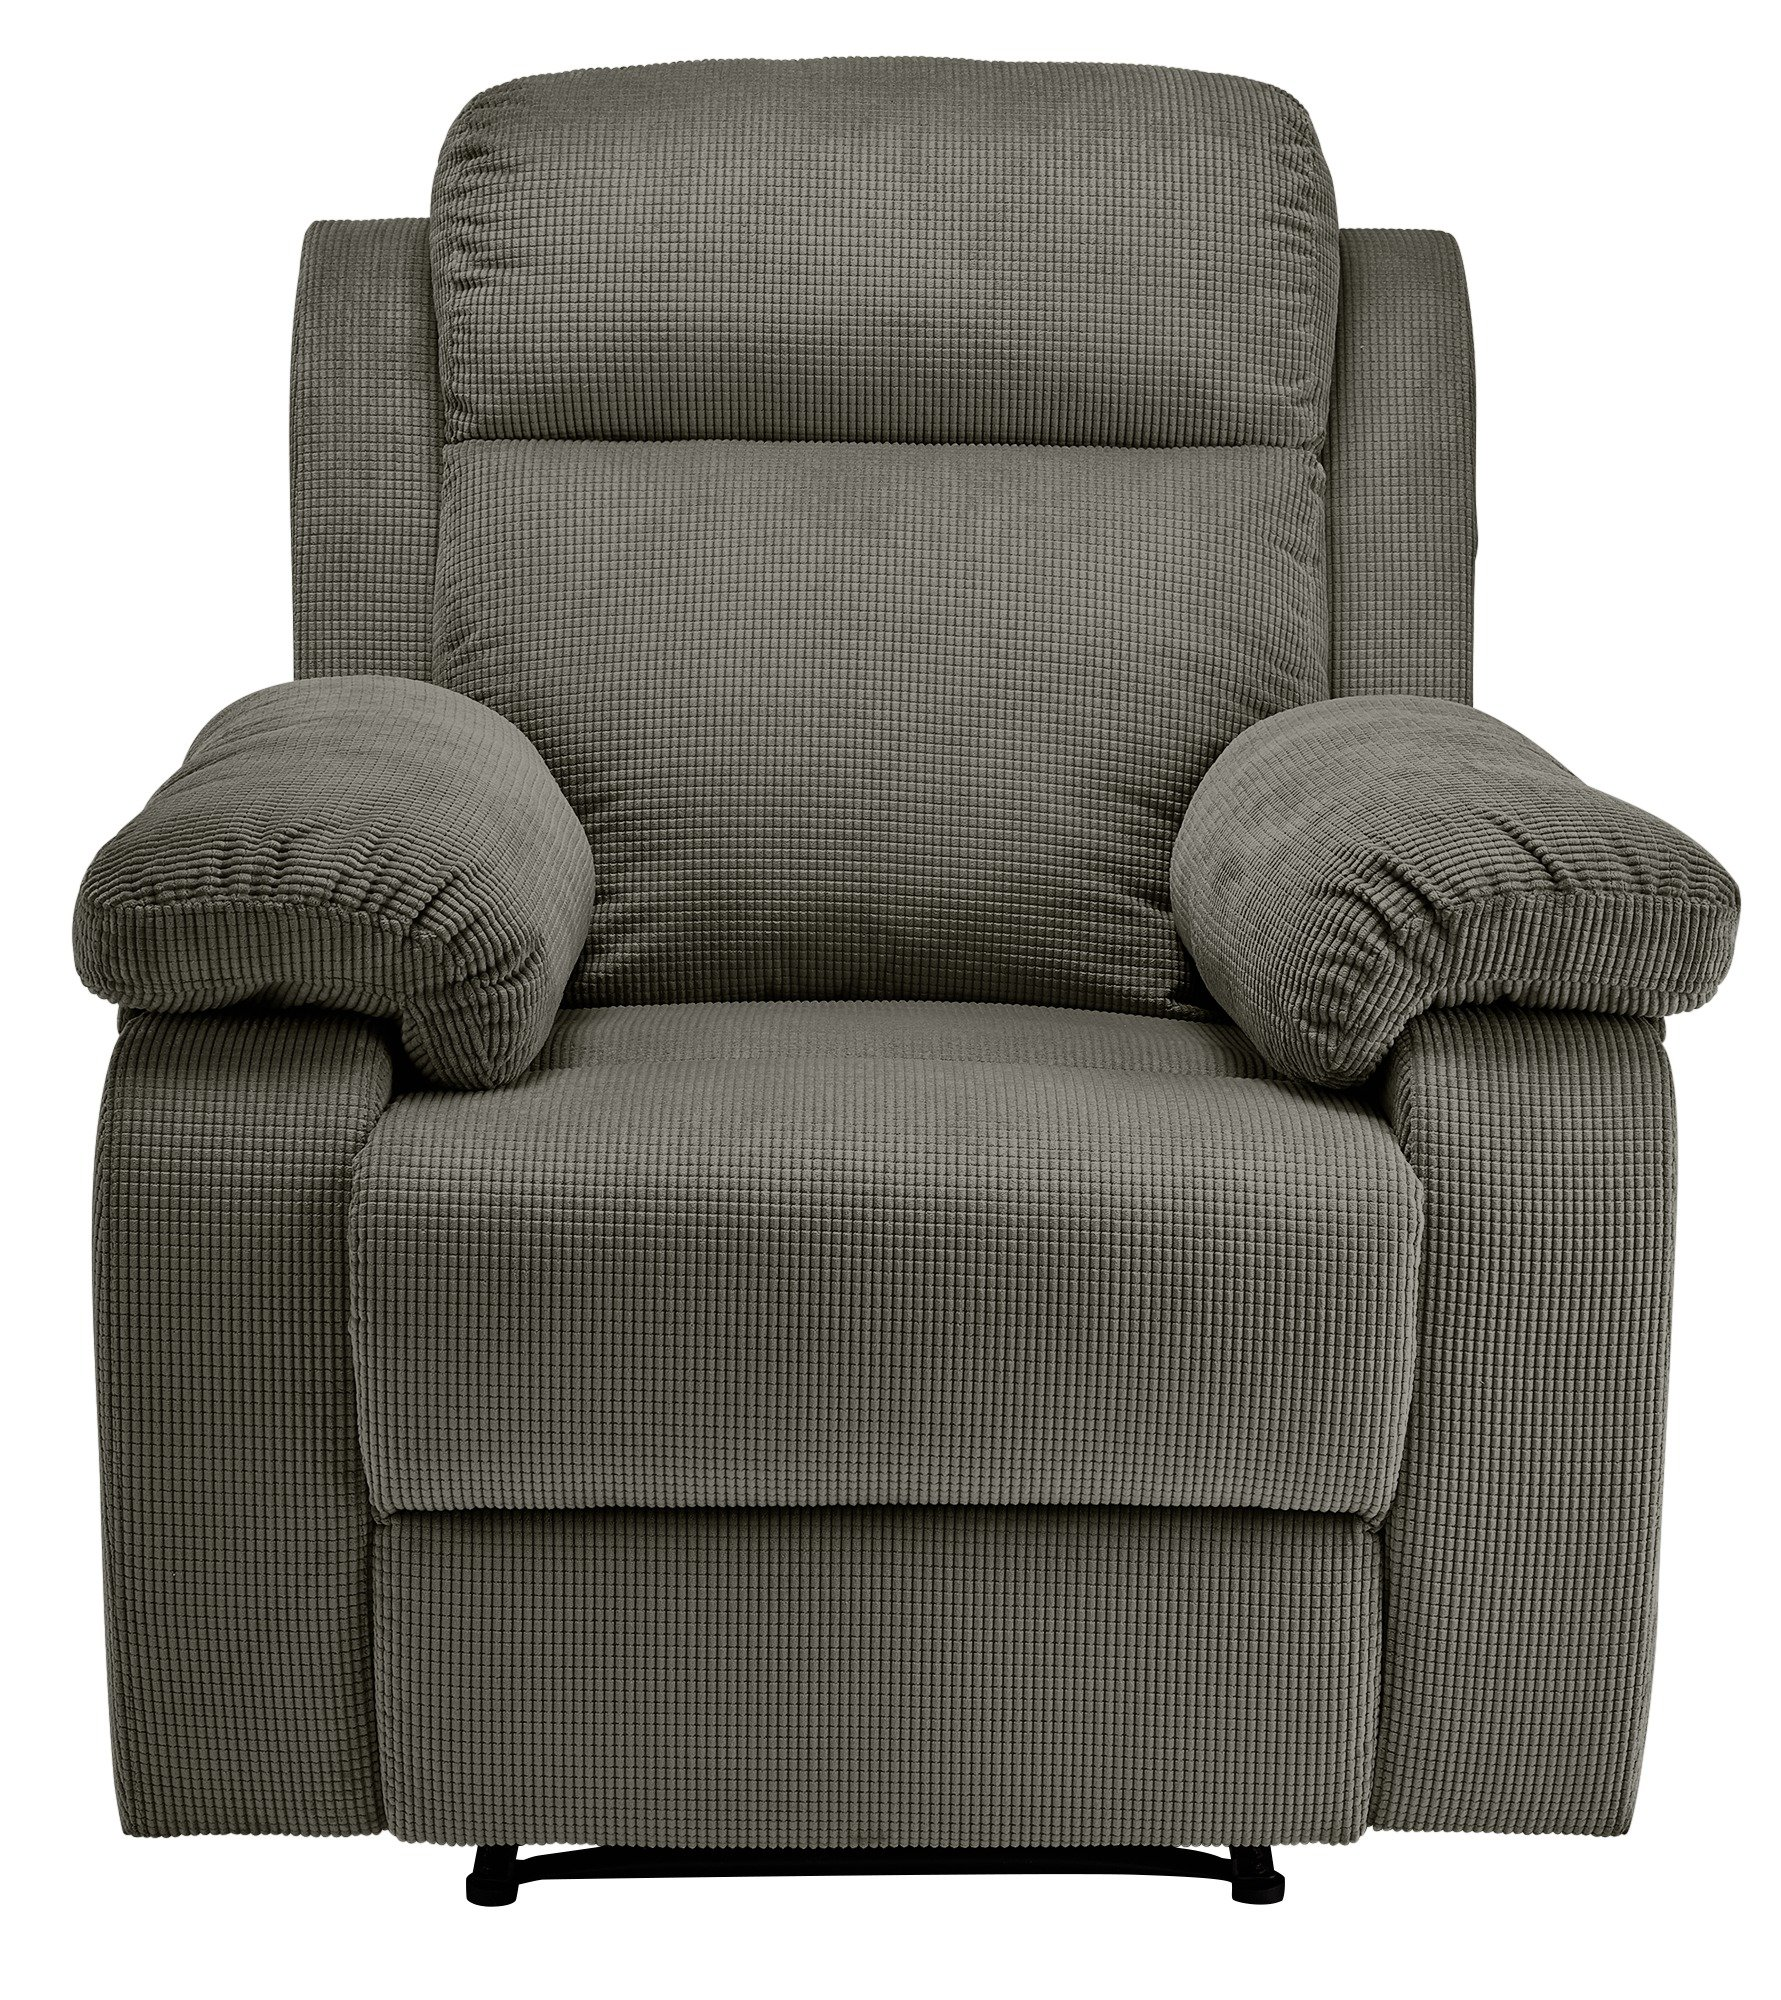 fishing chair argos luxury accent chairs arthouse kotori wallpaper silver for only 29 99